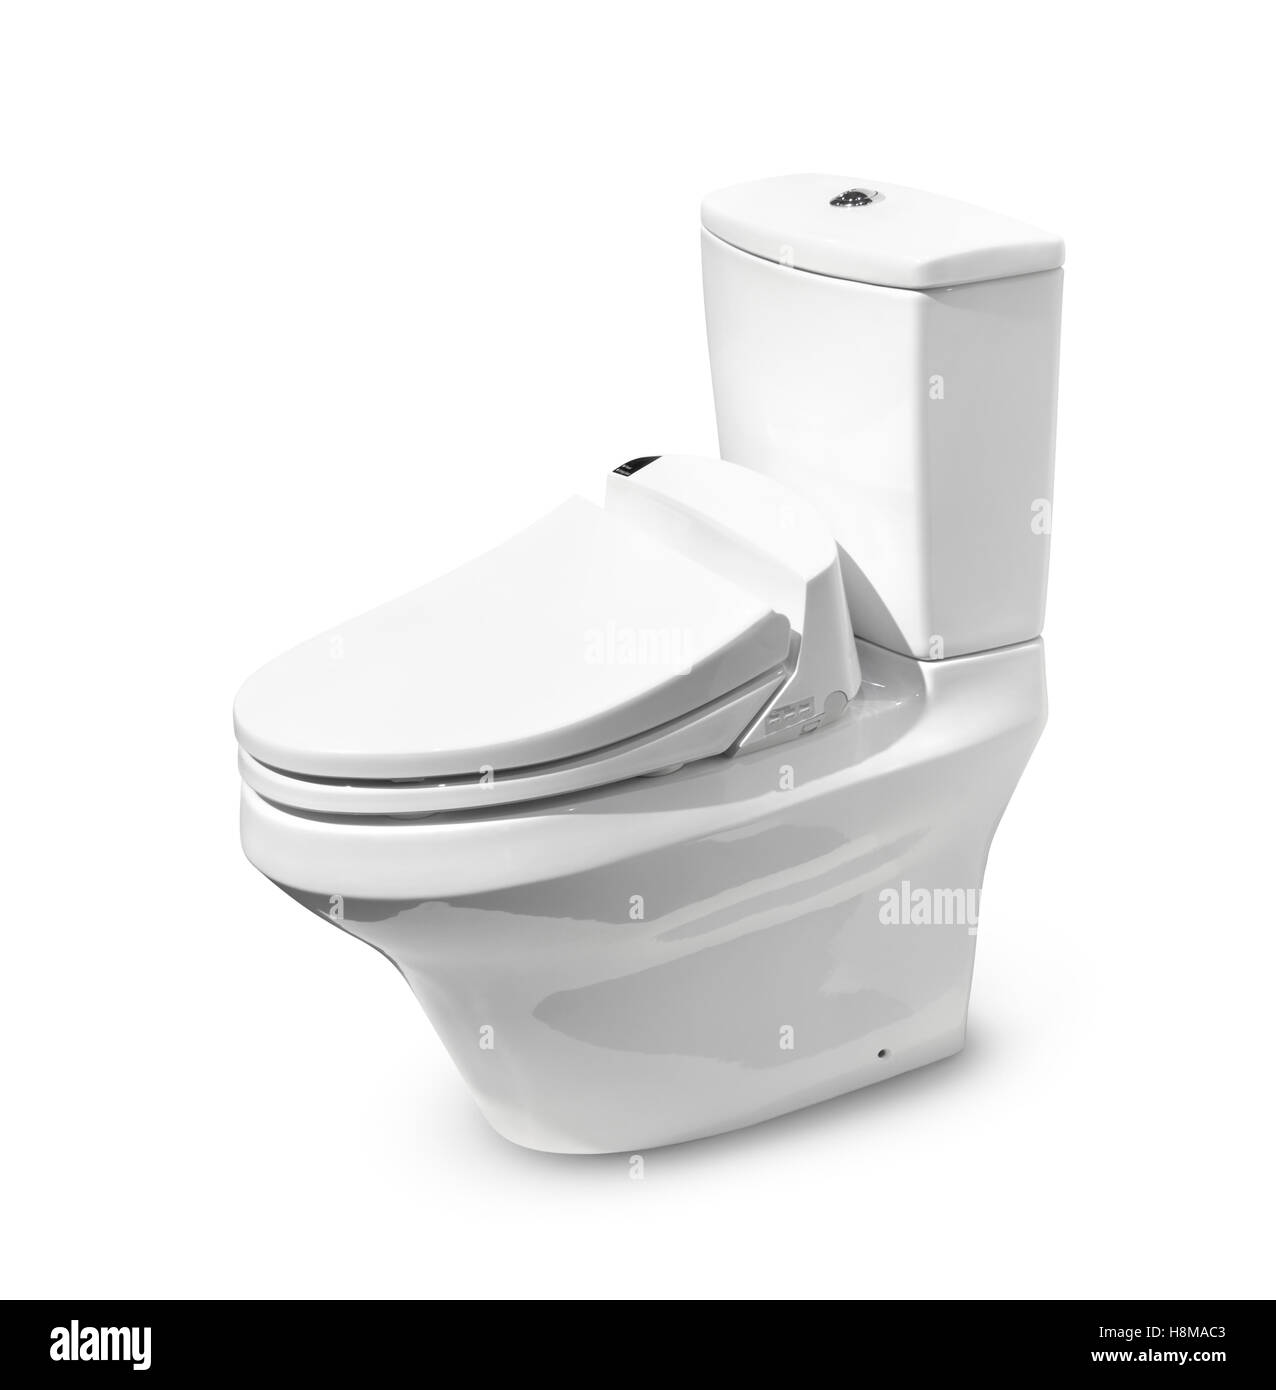 Hightech-Toto WC Washlet Sitz Stockfoto, Bild: 125837043 - Alamy